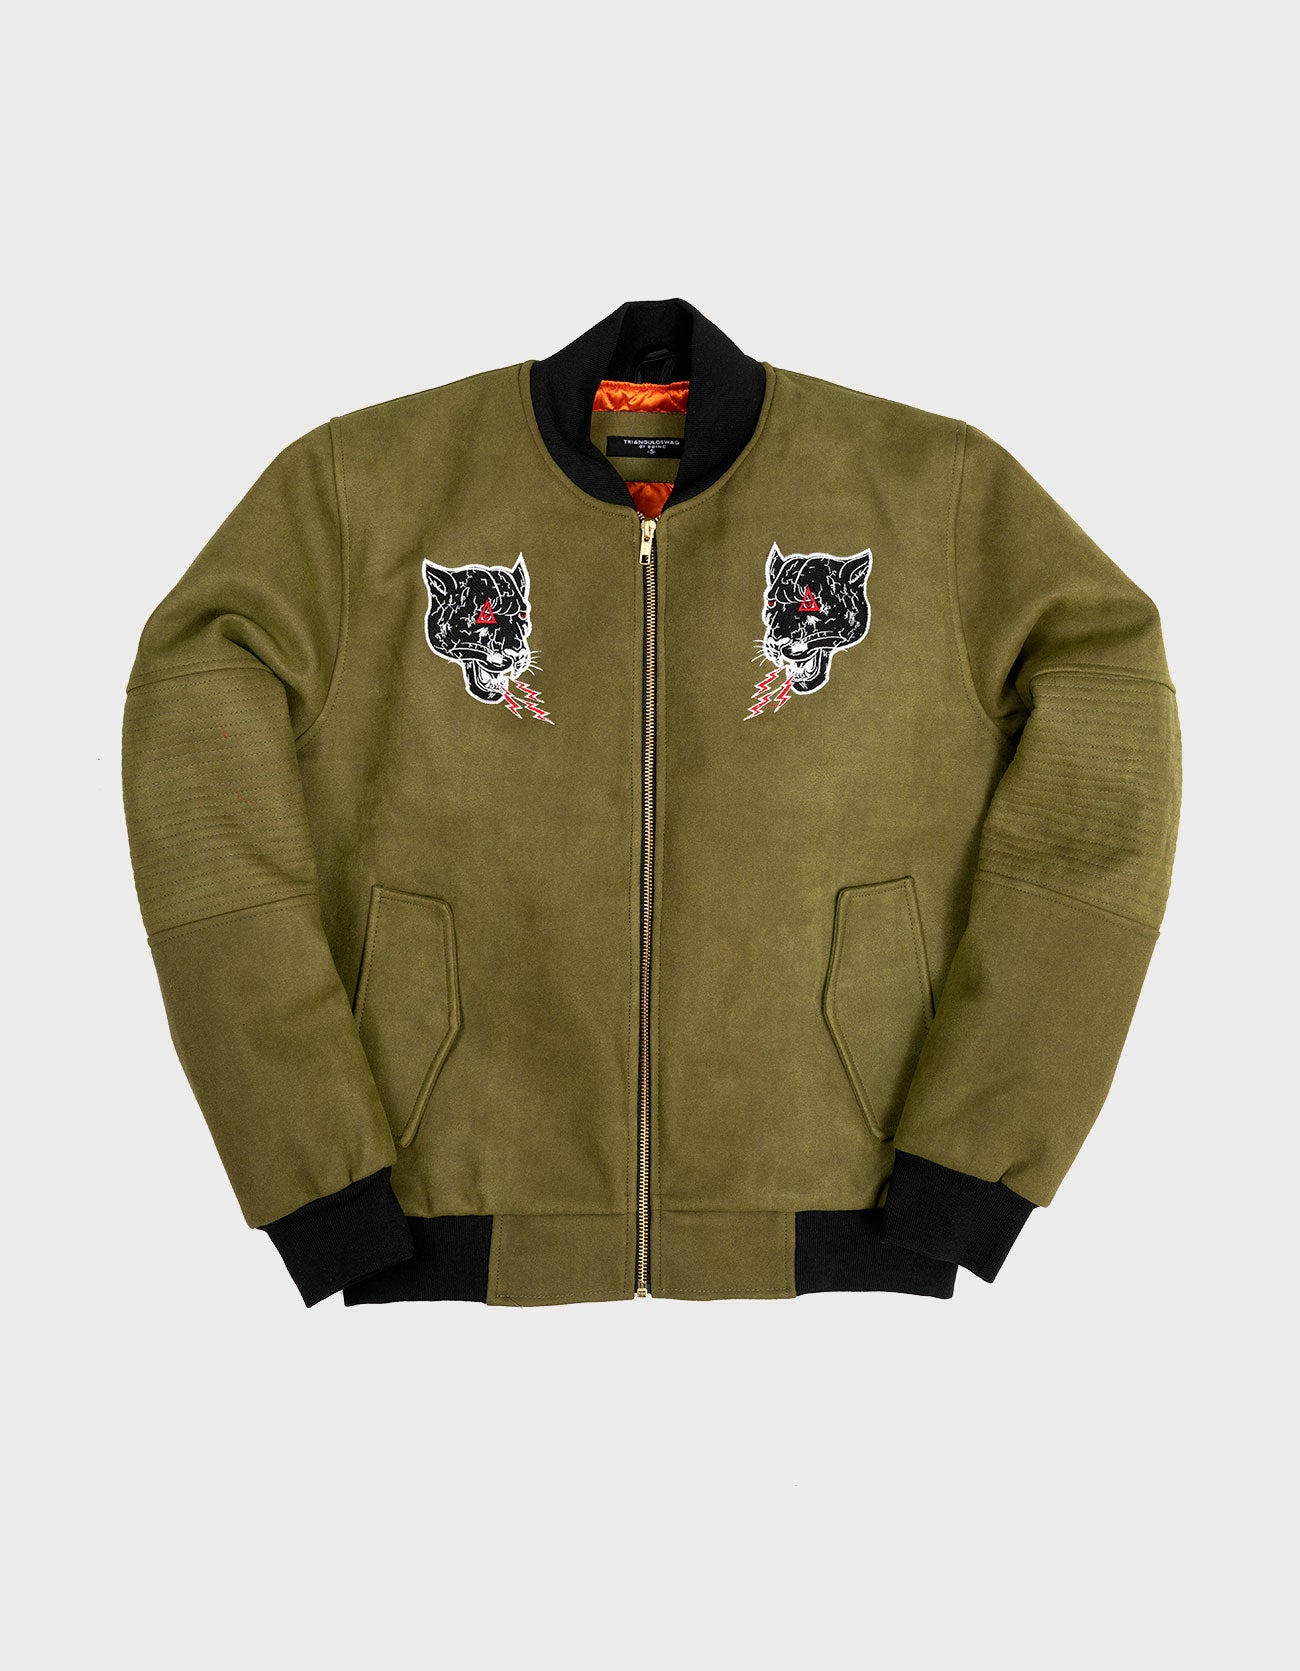 PANTHER OLIVE SUEDE JACKET - Triangulo Swag